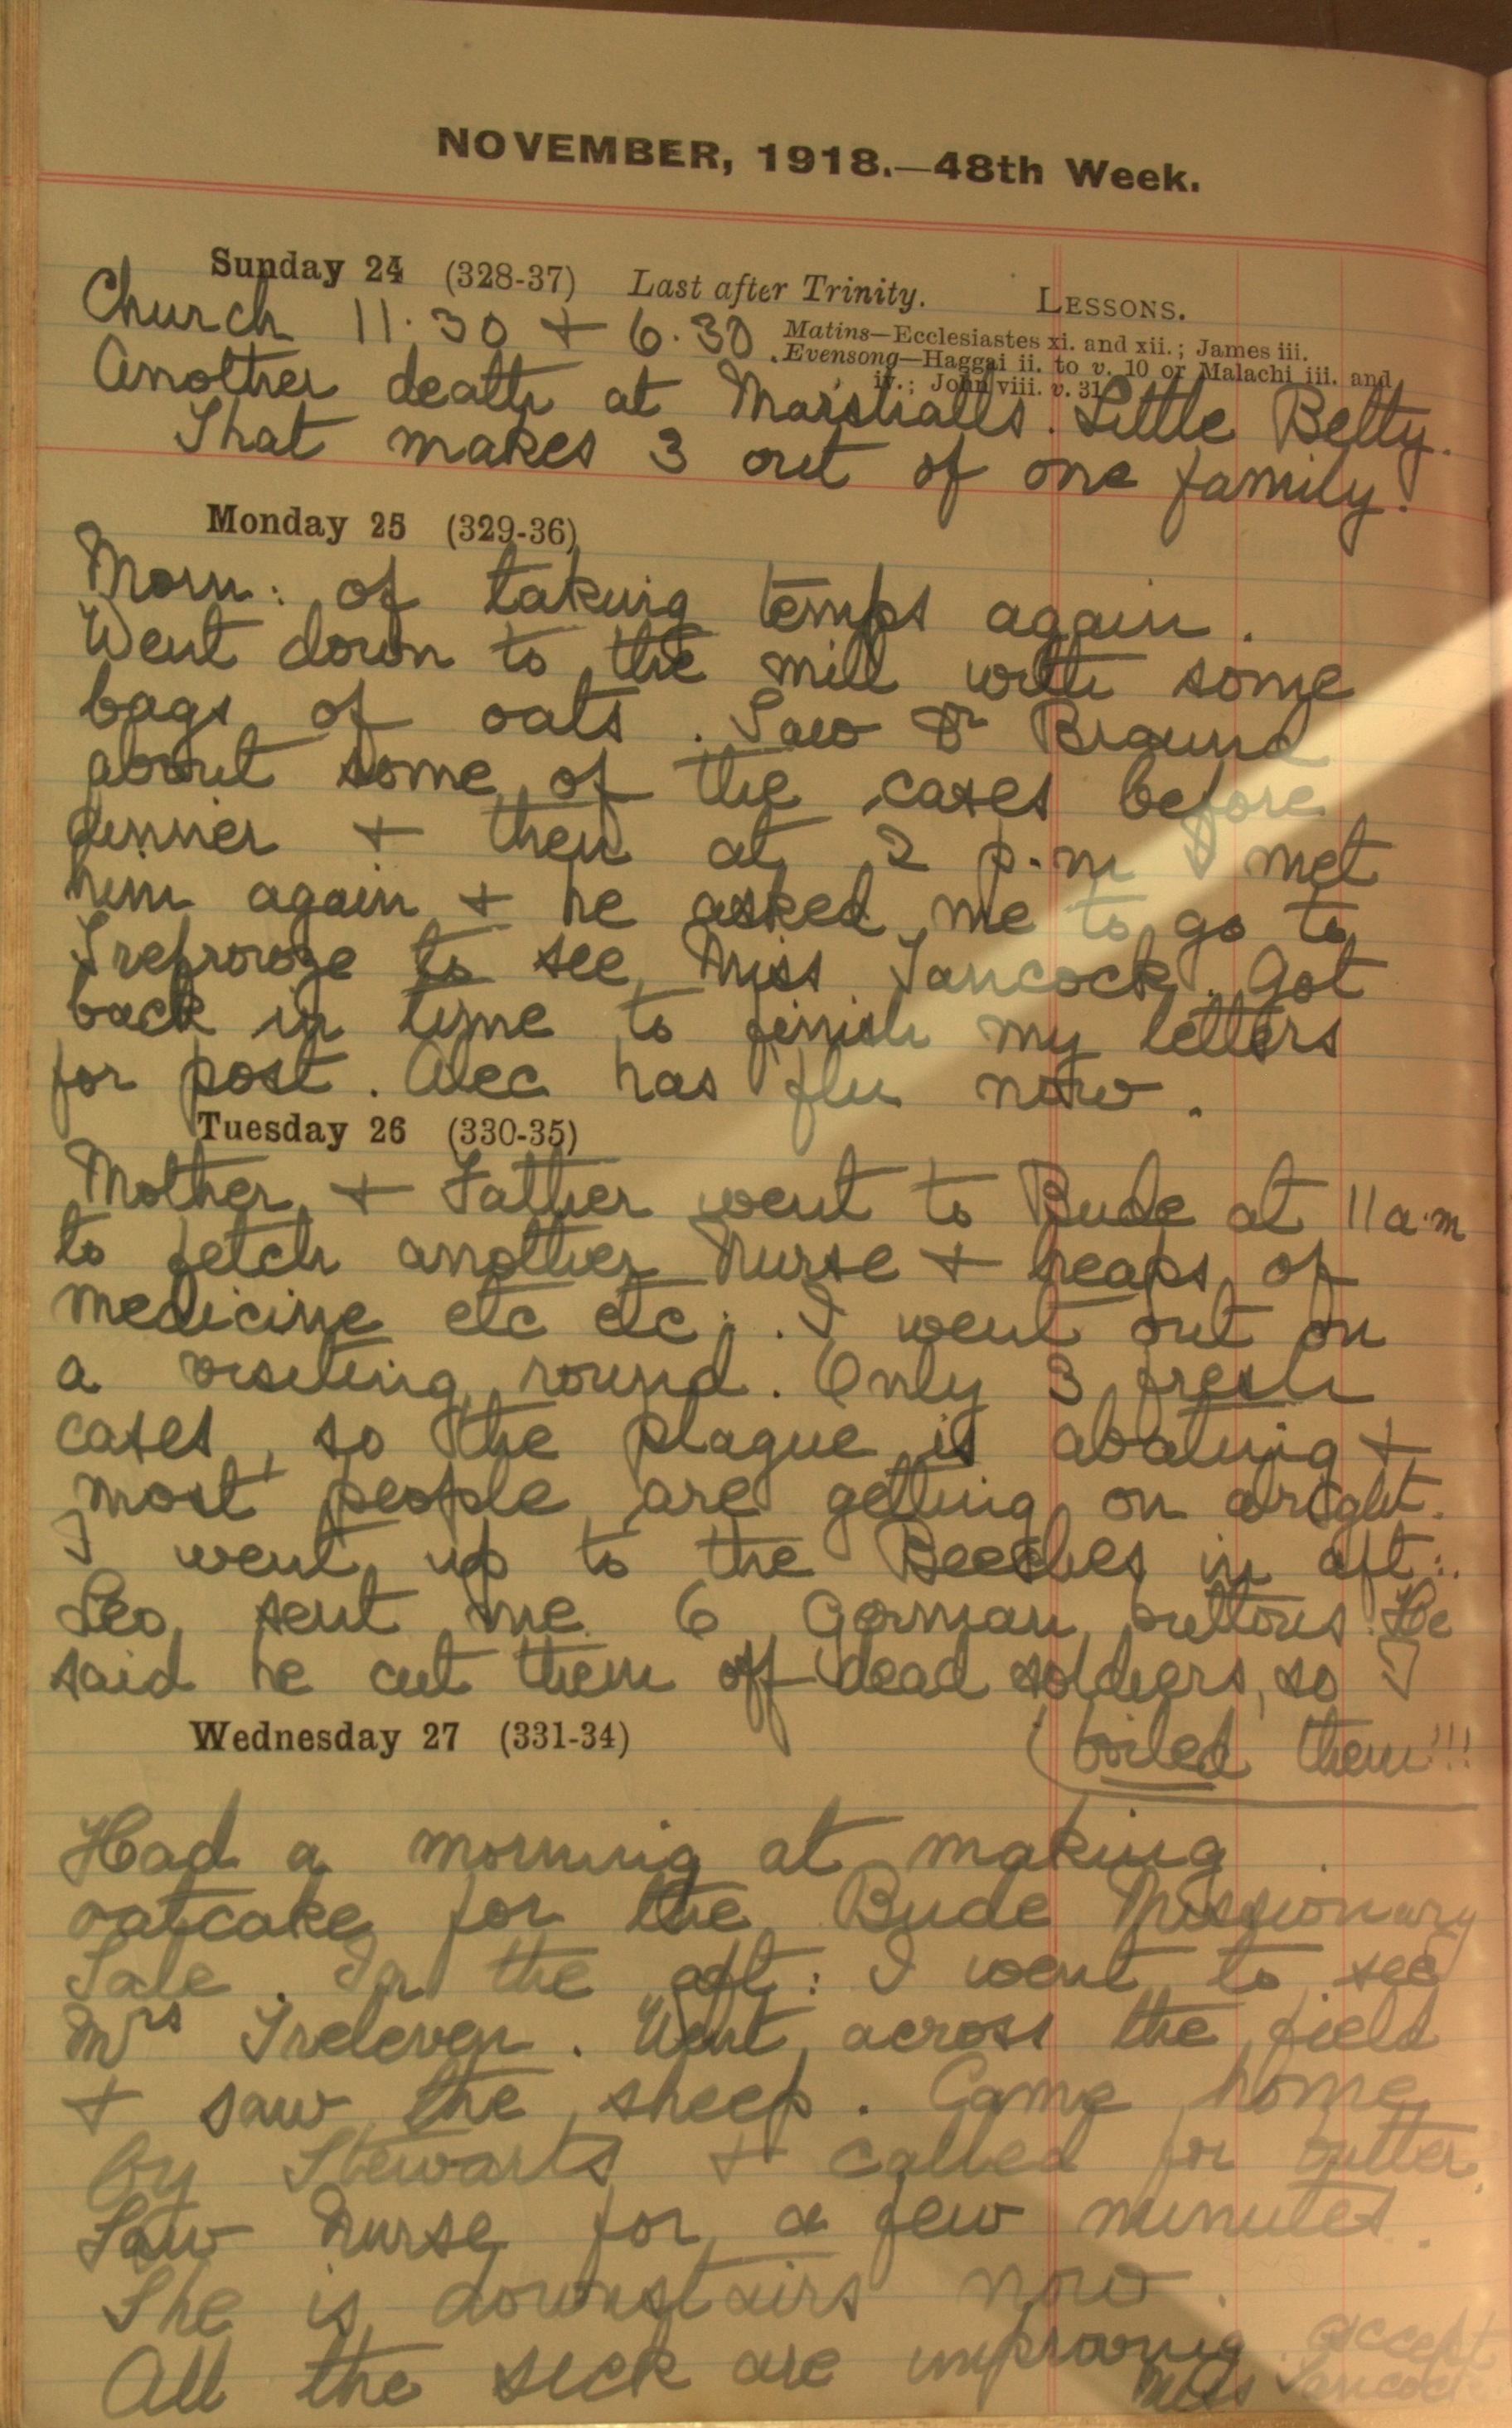 Entry 27th November 1918 Translation: '… Leo sent me 6 German buttons. He said he cut them off dead soldiers, so I boiled them!!!'